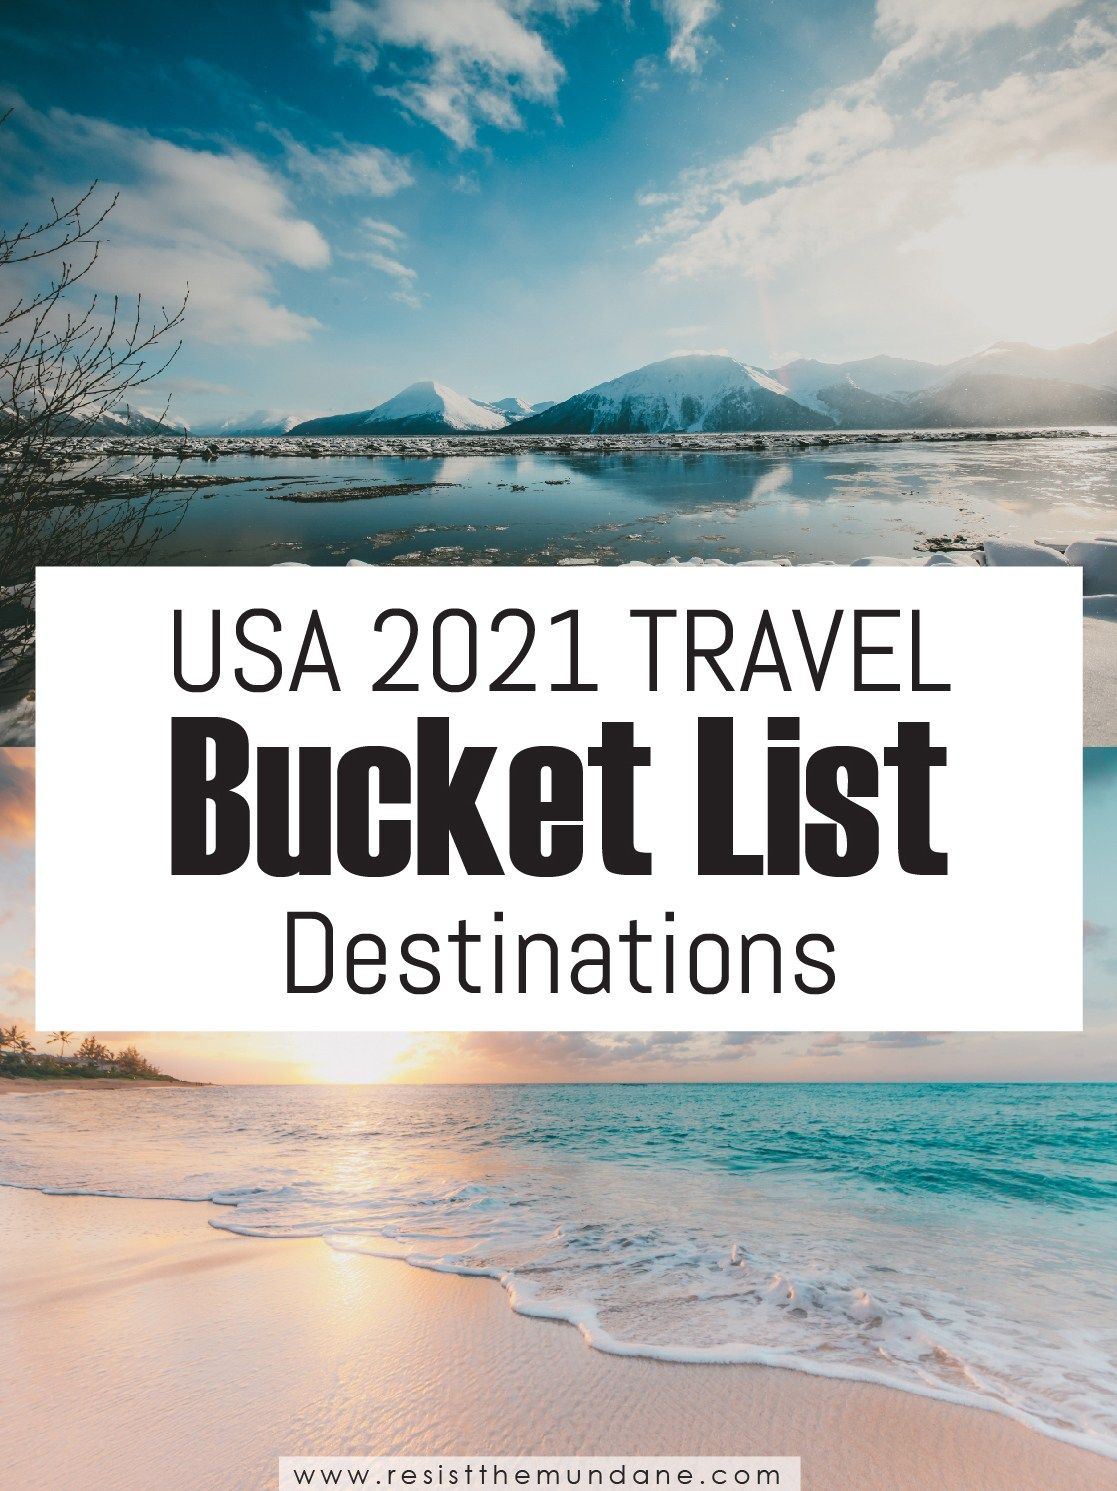 Check Out Our 2021 Travel Bucket List Destinations At Resist The Mundane It S Always Great To Make A List An In 2020 Travel Usa Travel Bucket List Travel Inspiration